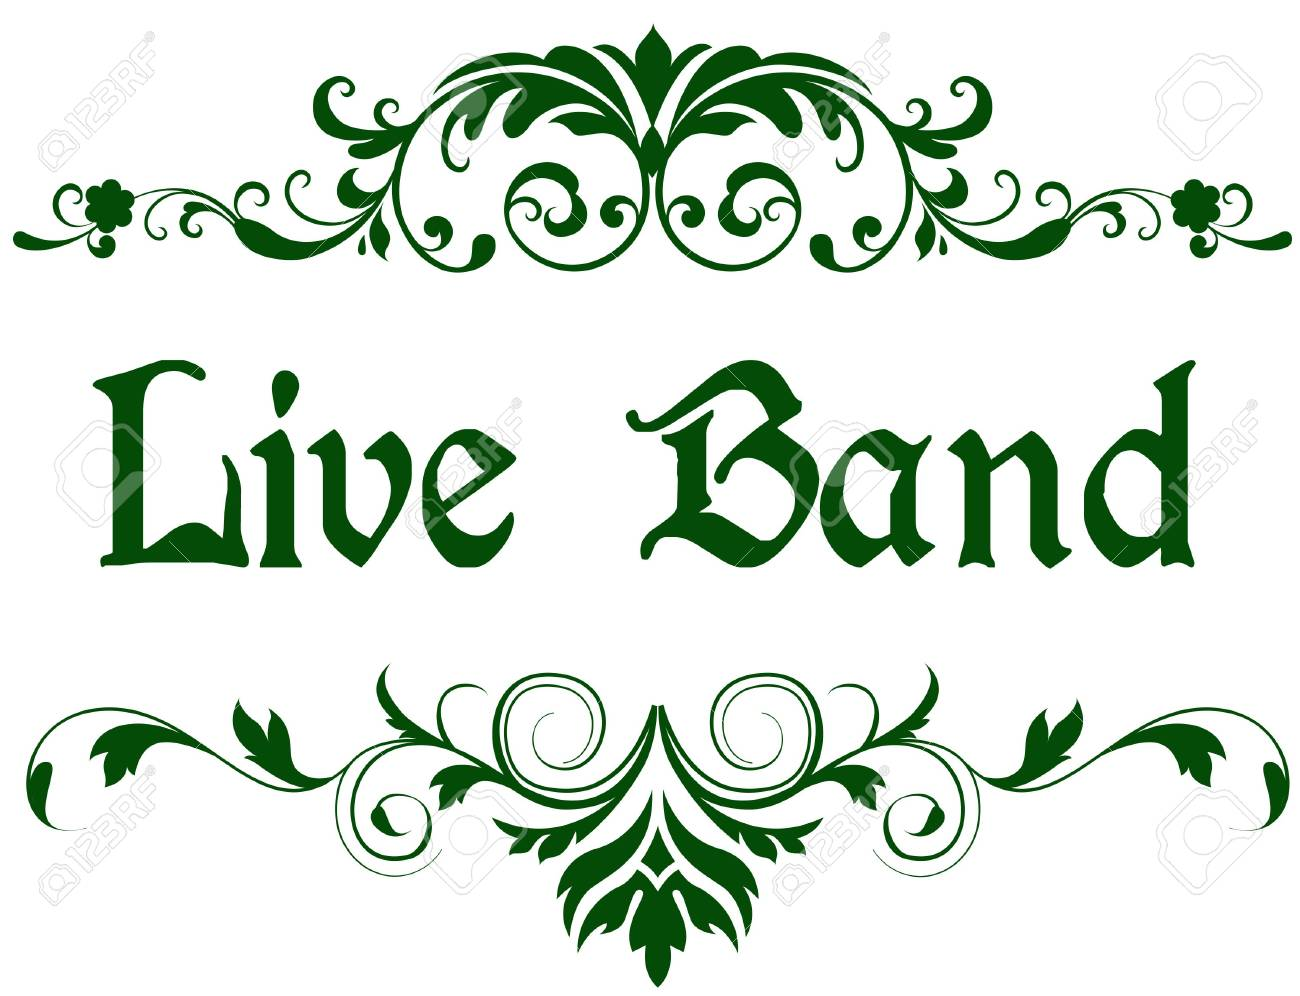 Green Frame With LIVE BAND Text. Illustration Image Concept Stock ...